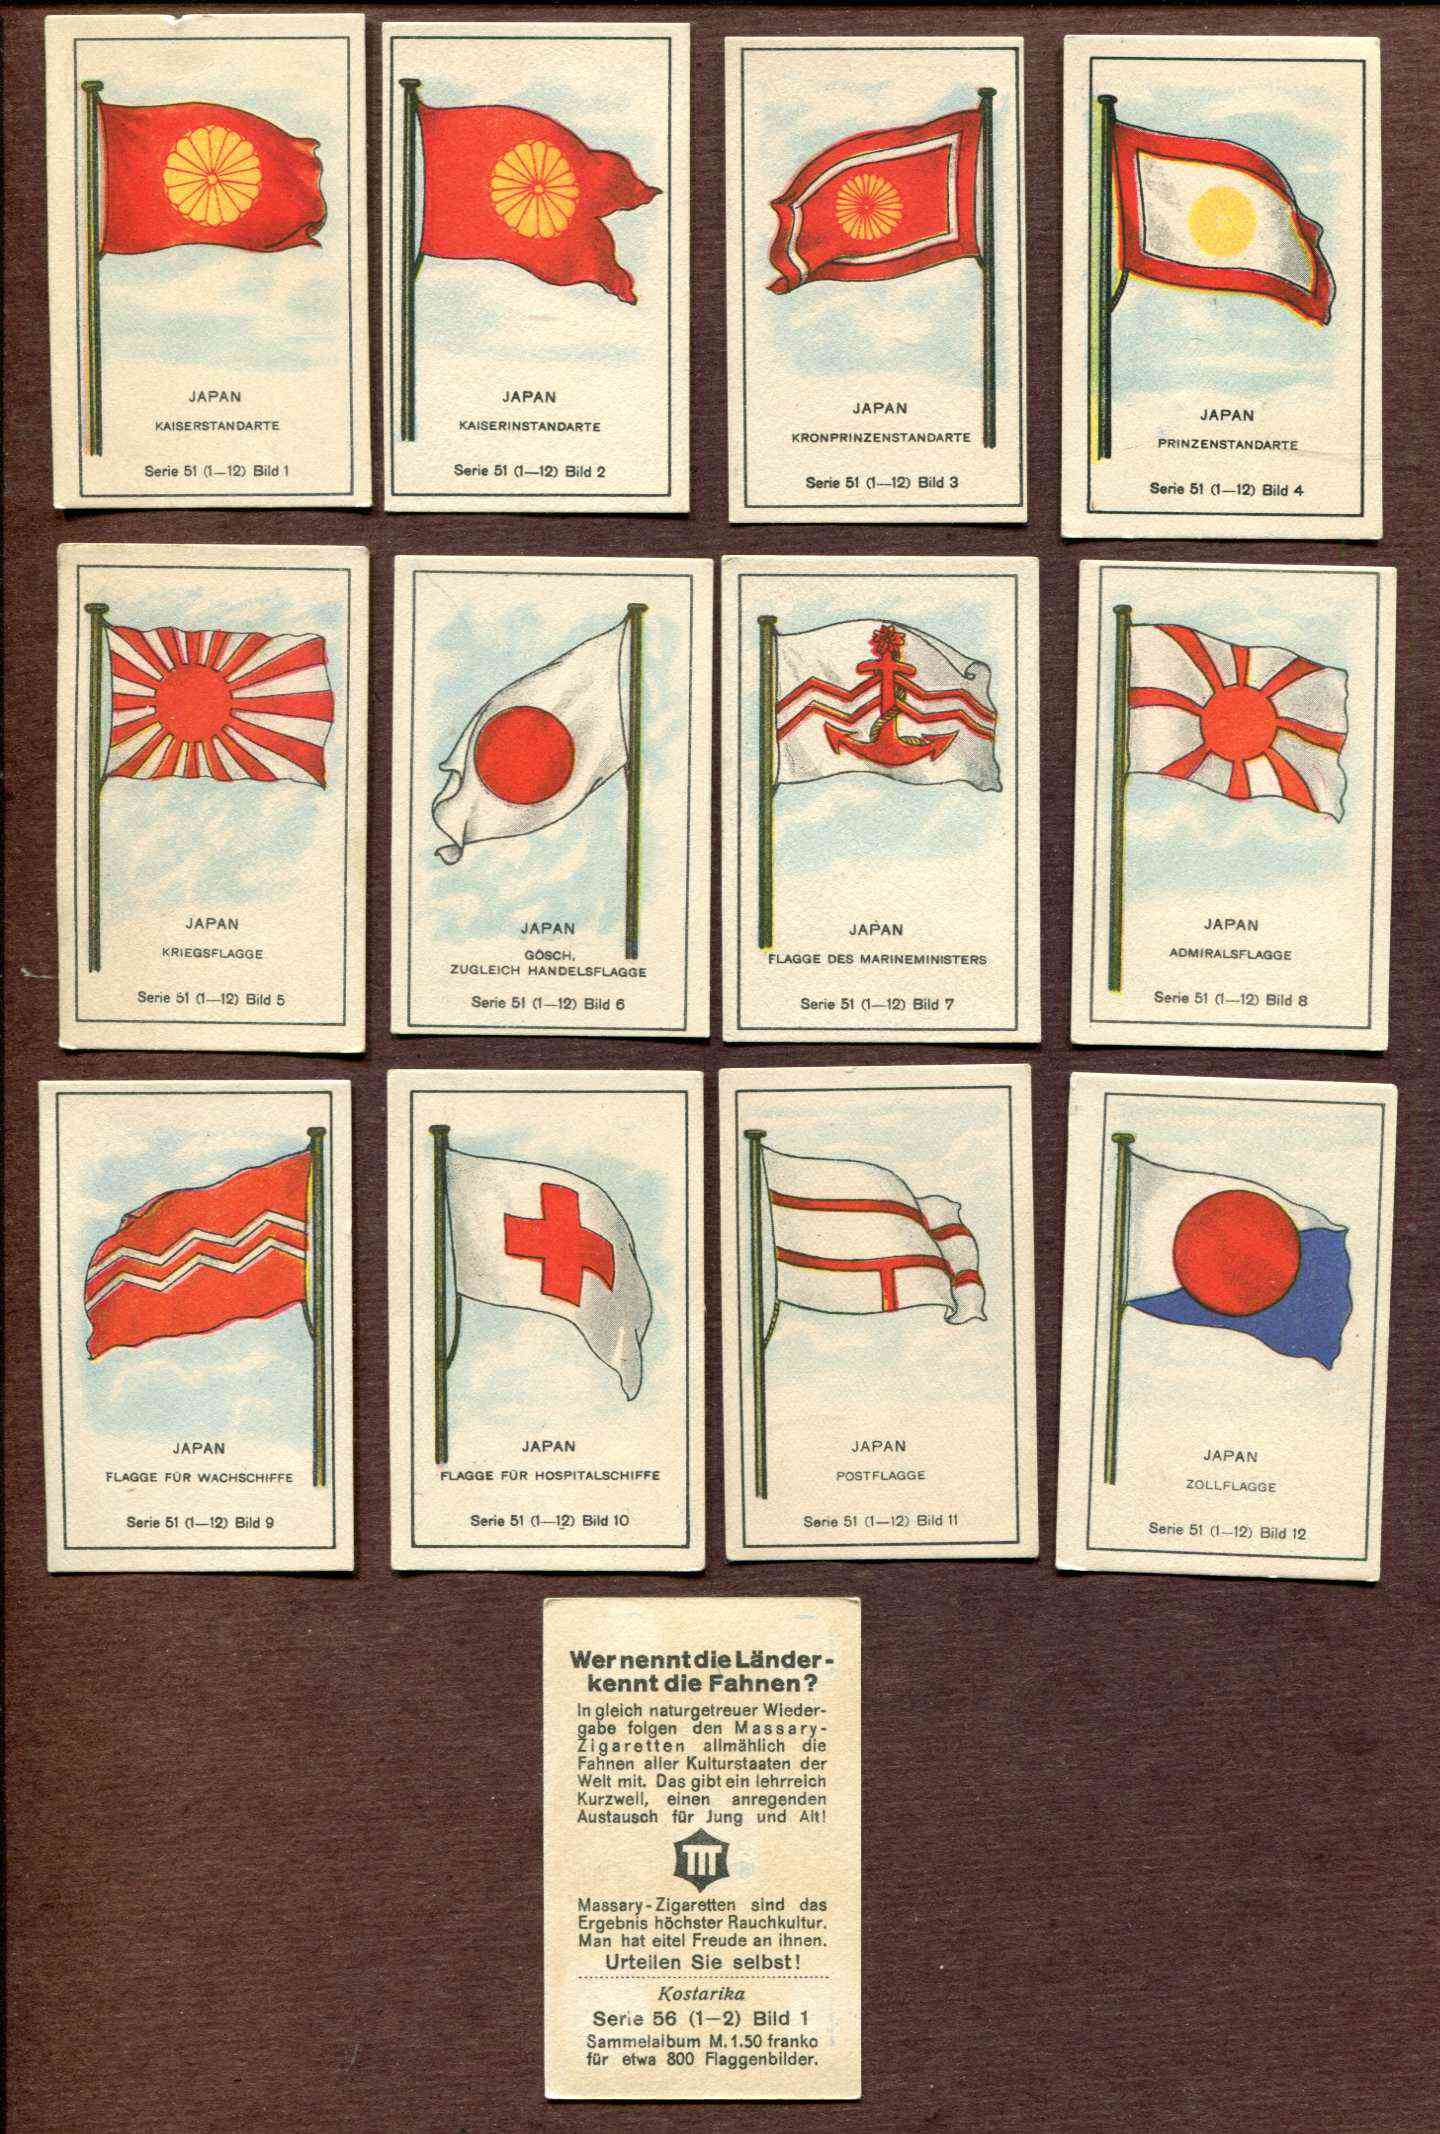 1929 'Wer nennt die Lander' JAPAN Flag cards - SET (Series 51-12 cards) n cards value